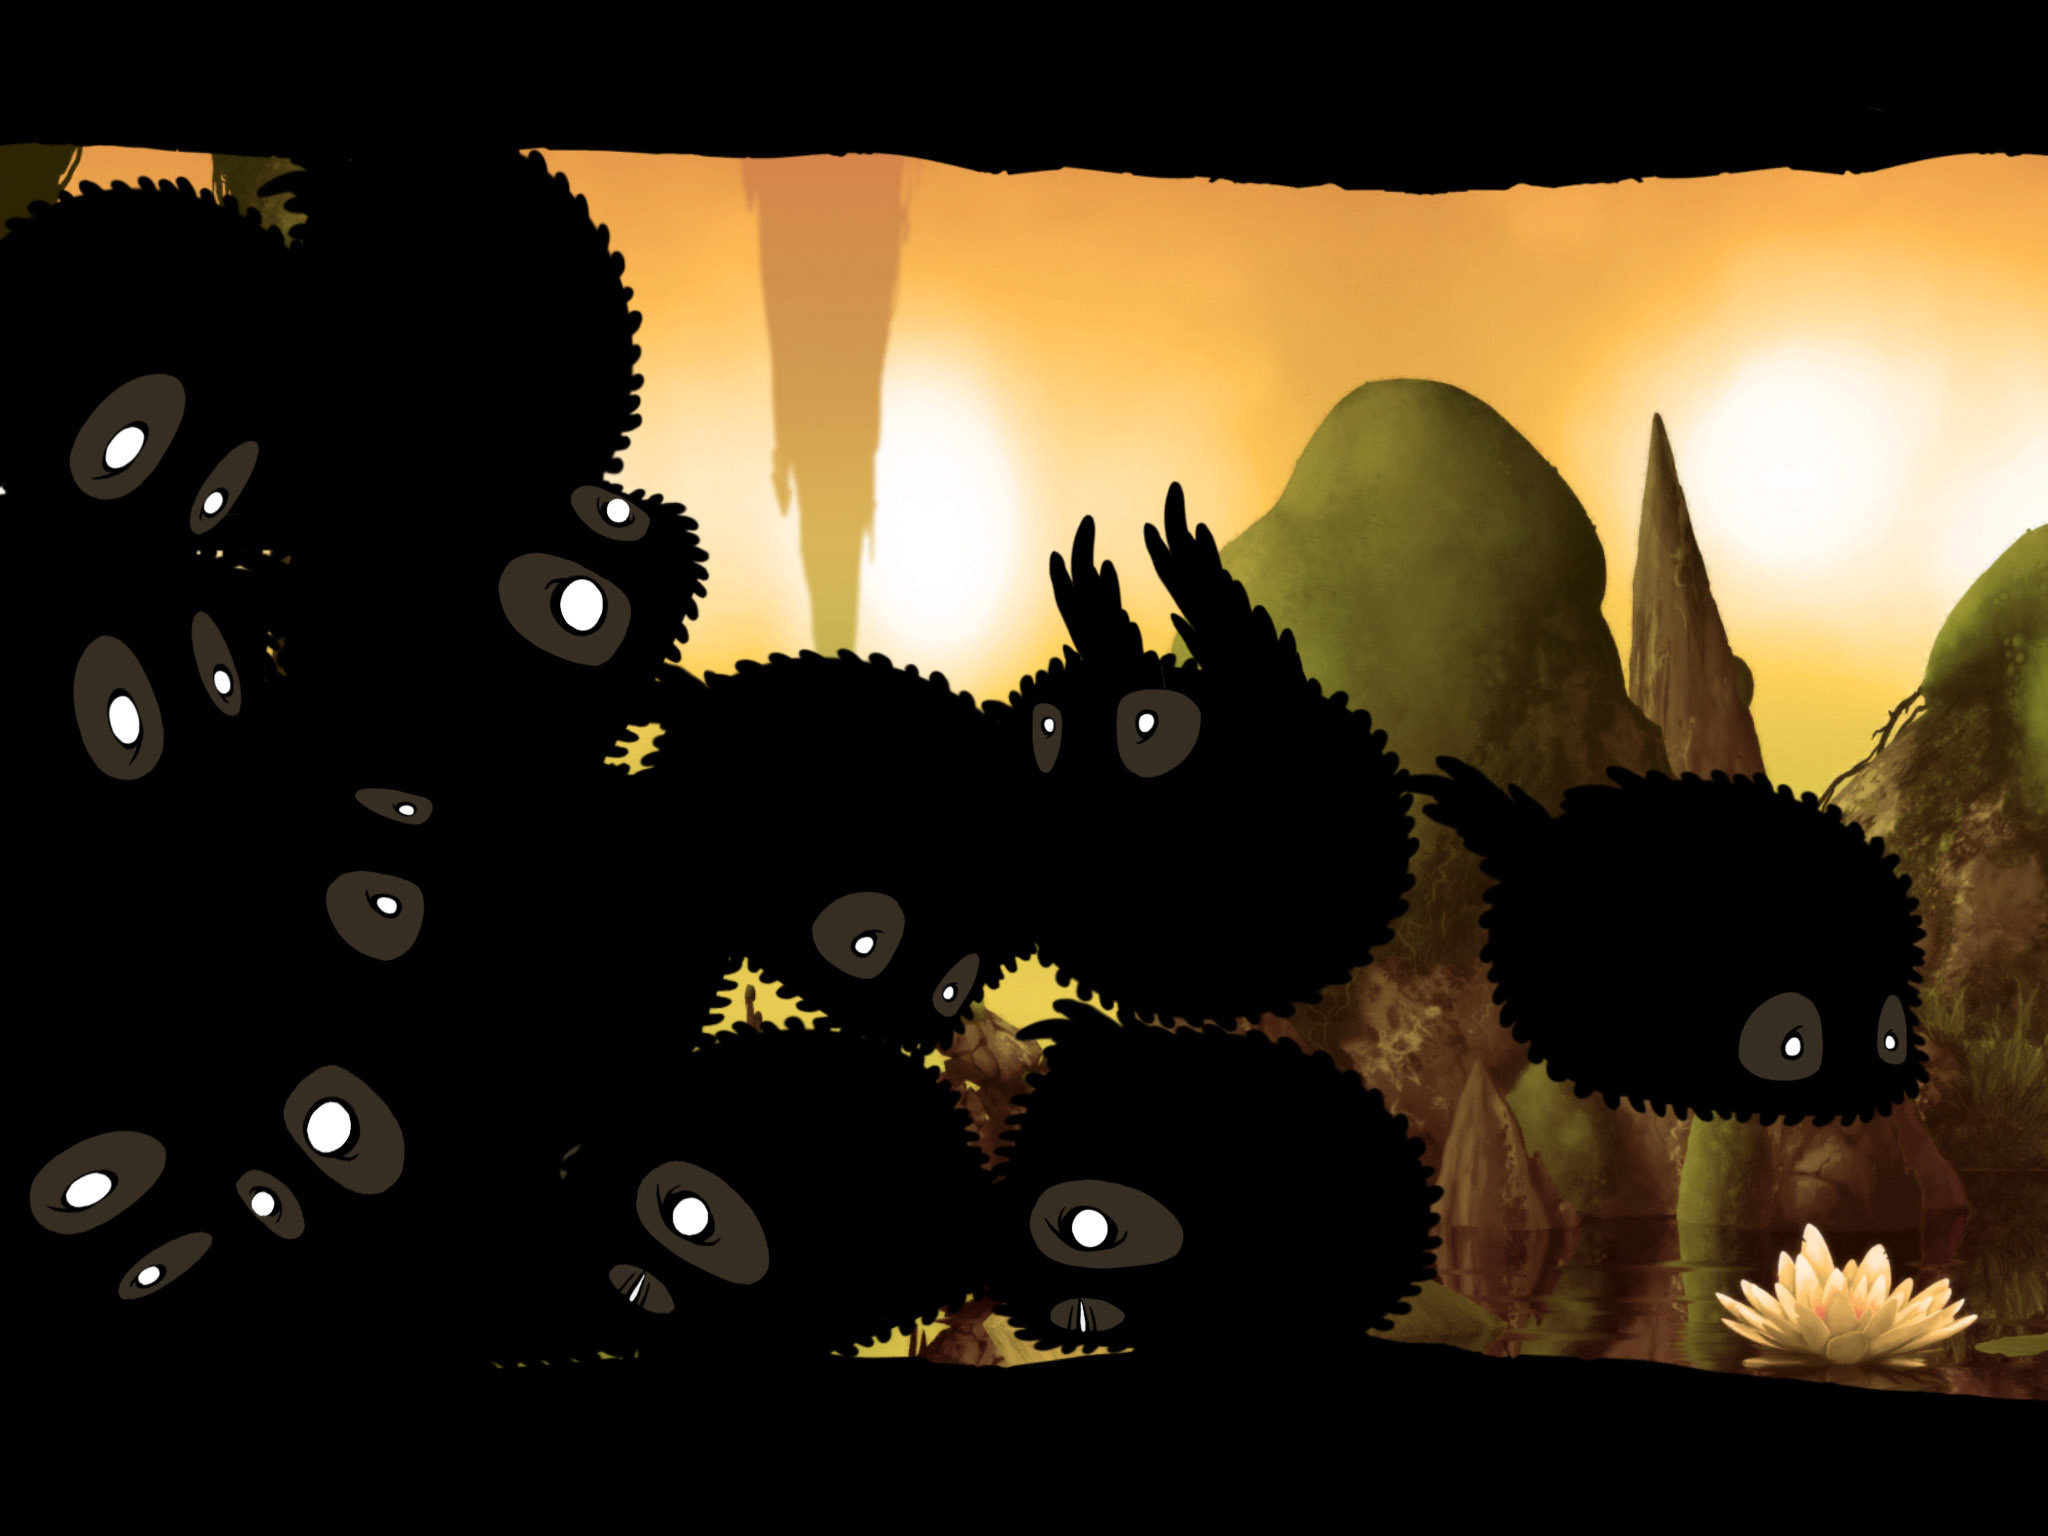 BADLAND - Day II - Dawn